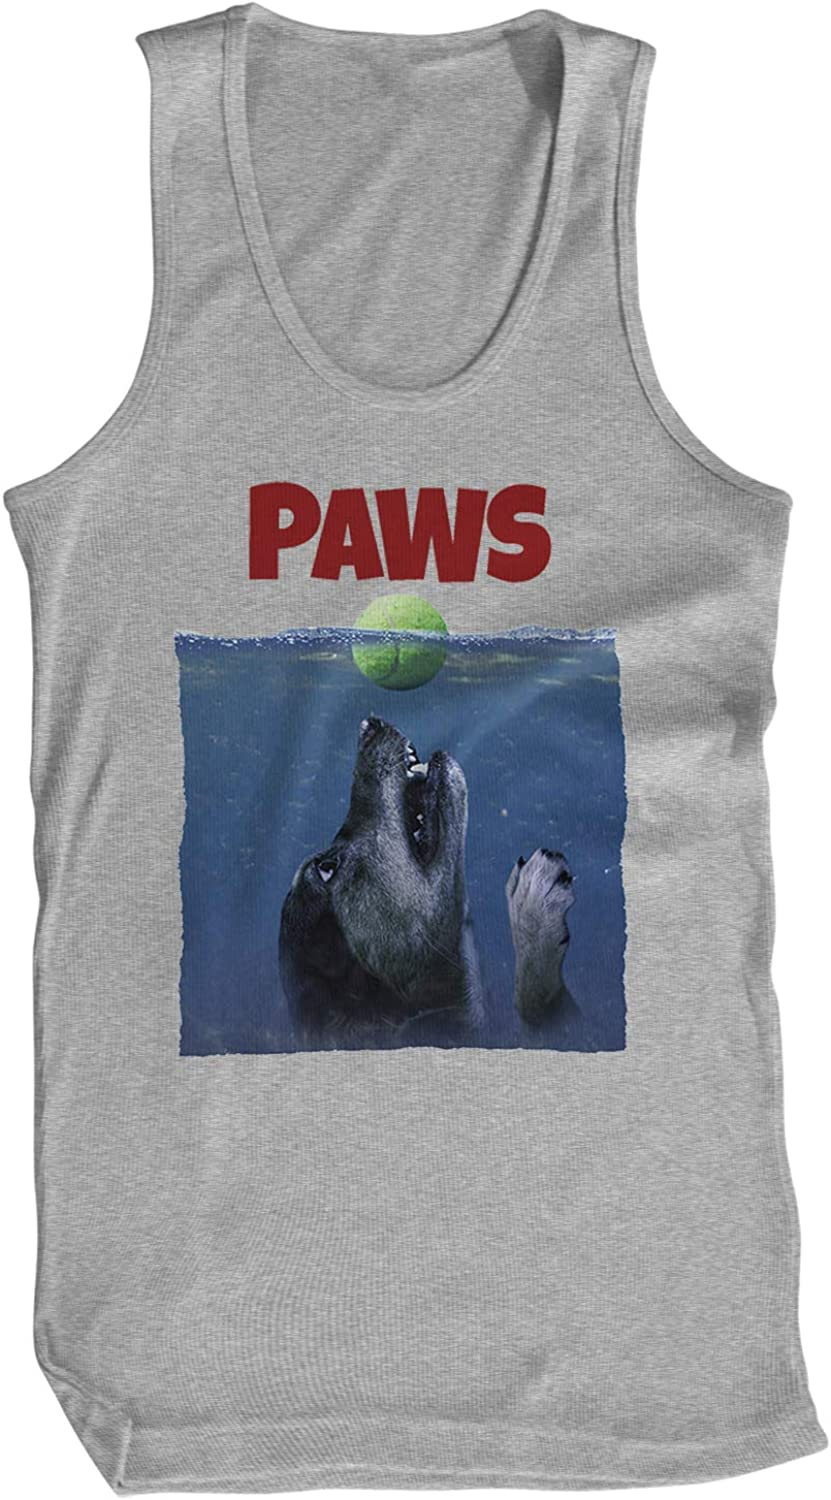 Amdesco Men's Paws Beagle Tank Top